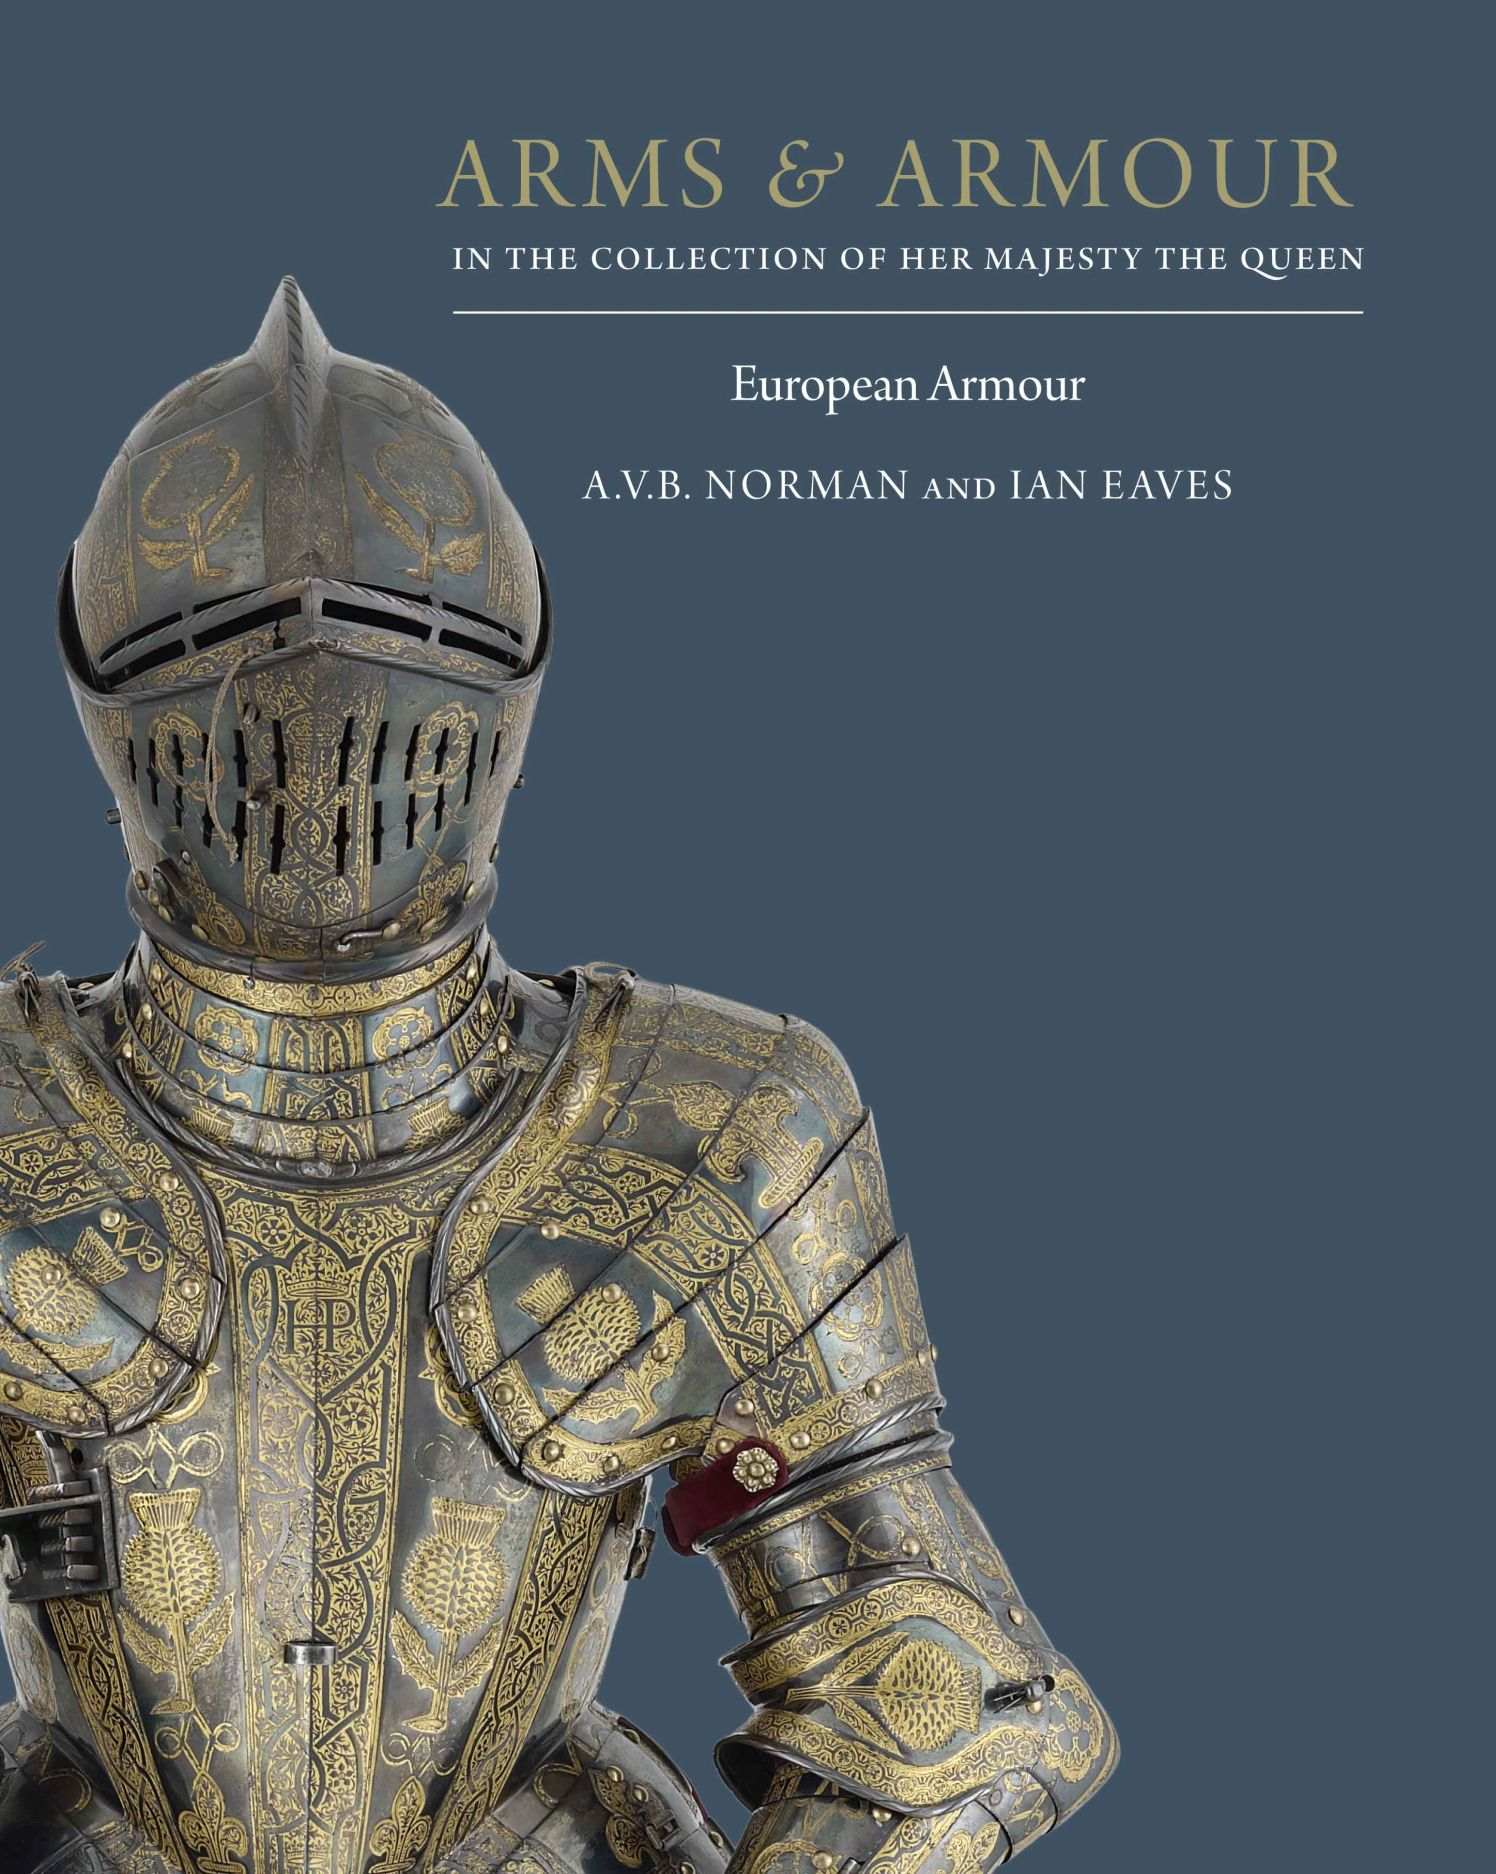 Arms & Armour in the Collection of Her Majesty The Queen: Volume I: European Armour